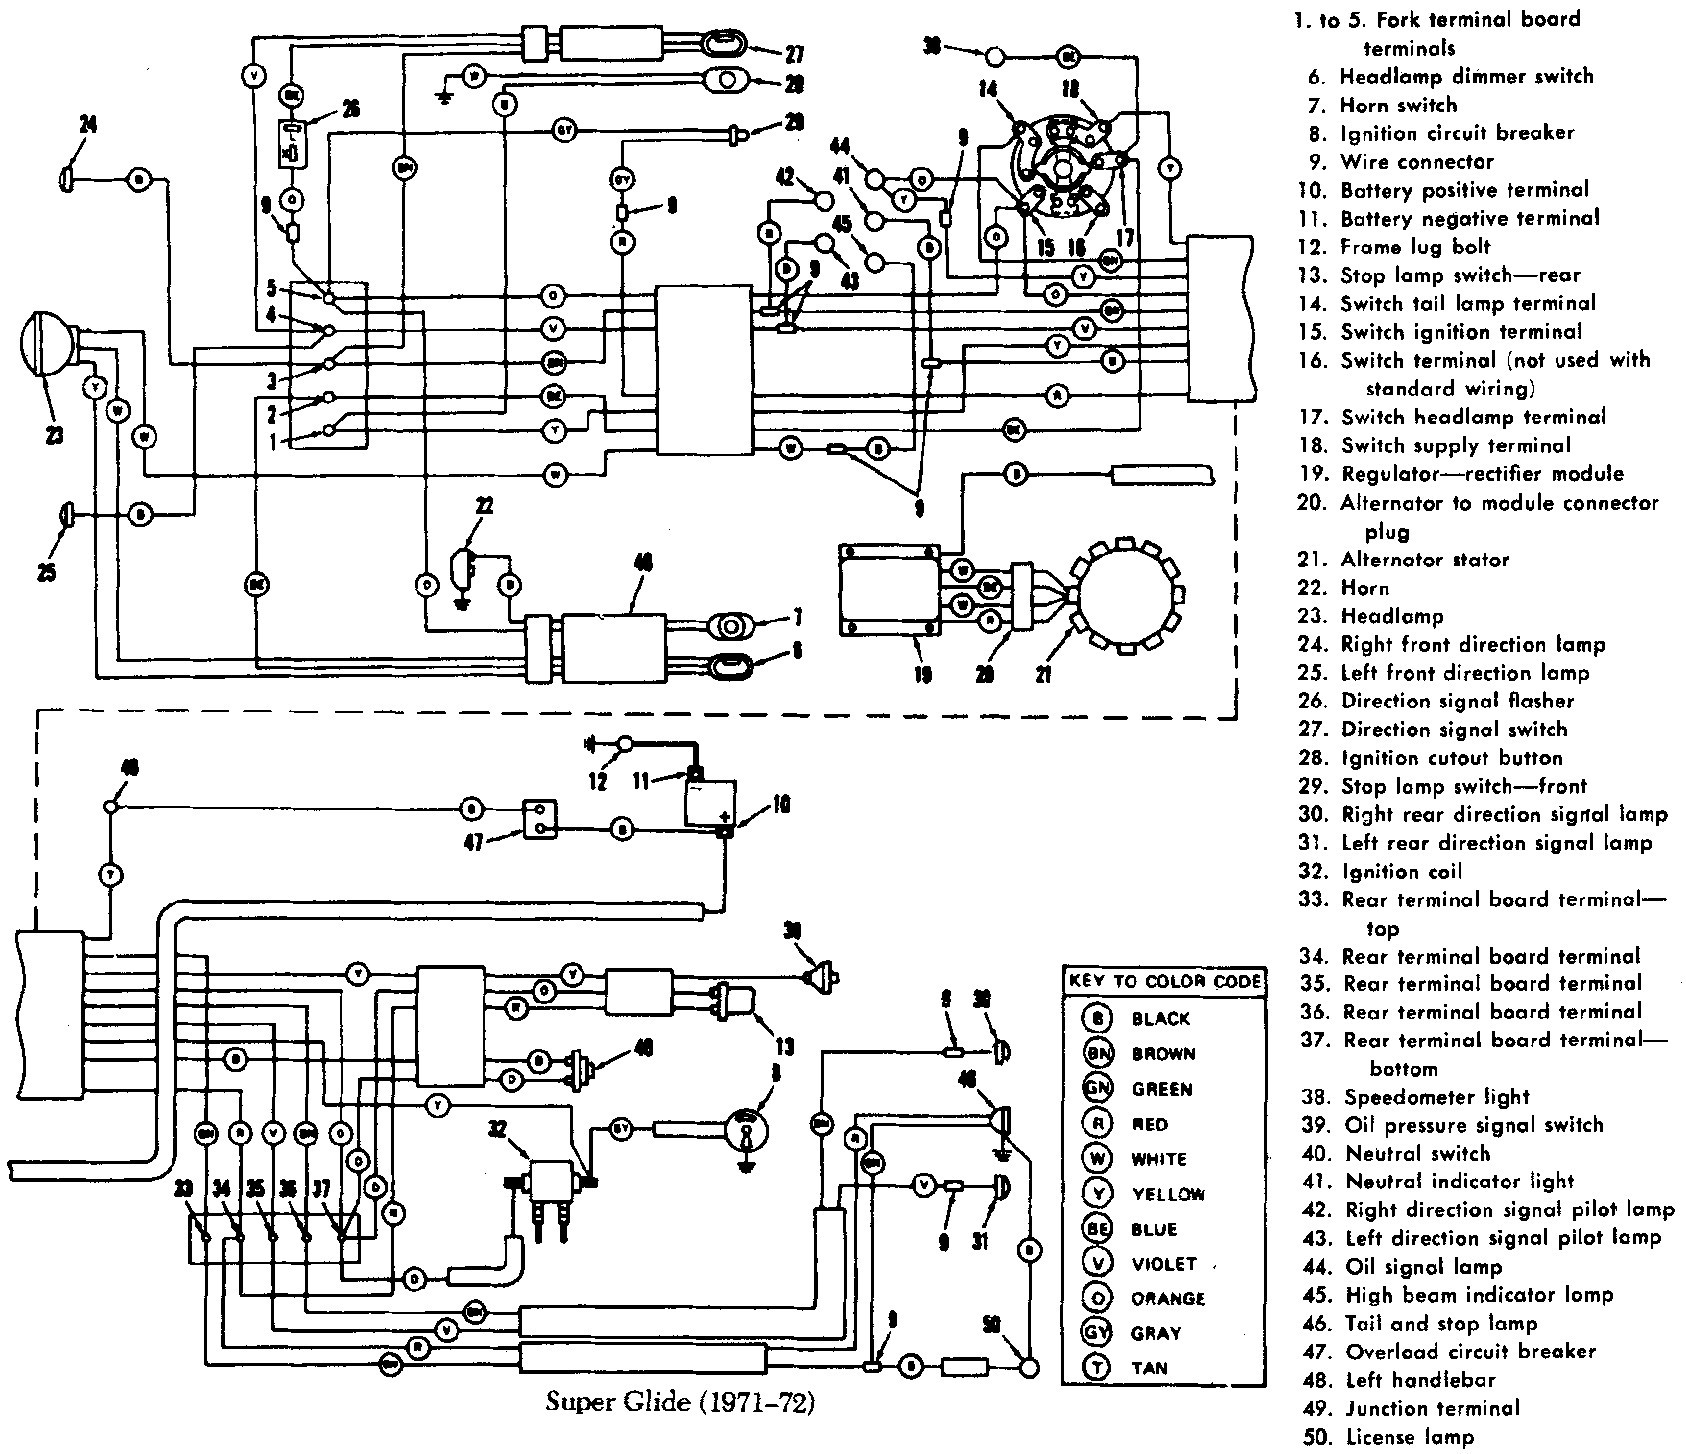 1998 Flstc Wiring Diagram | Wiring Schematic Diagram on